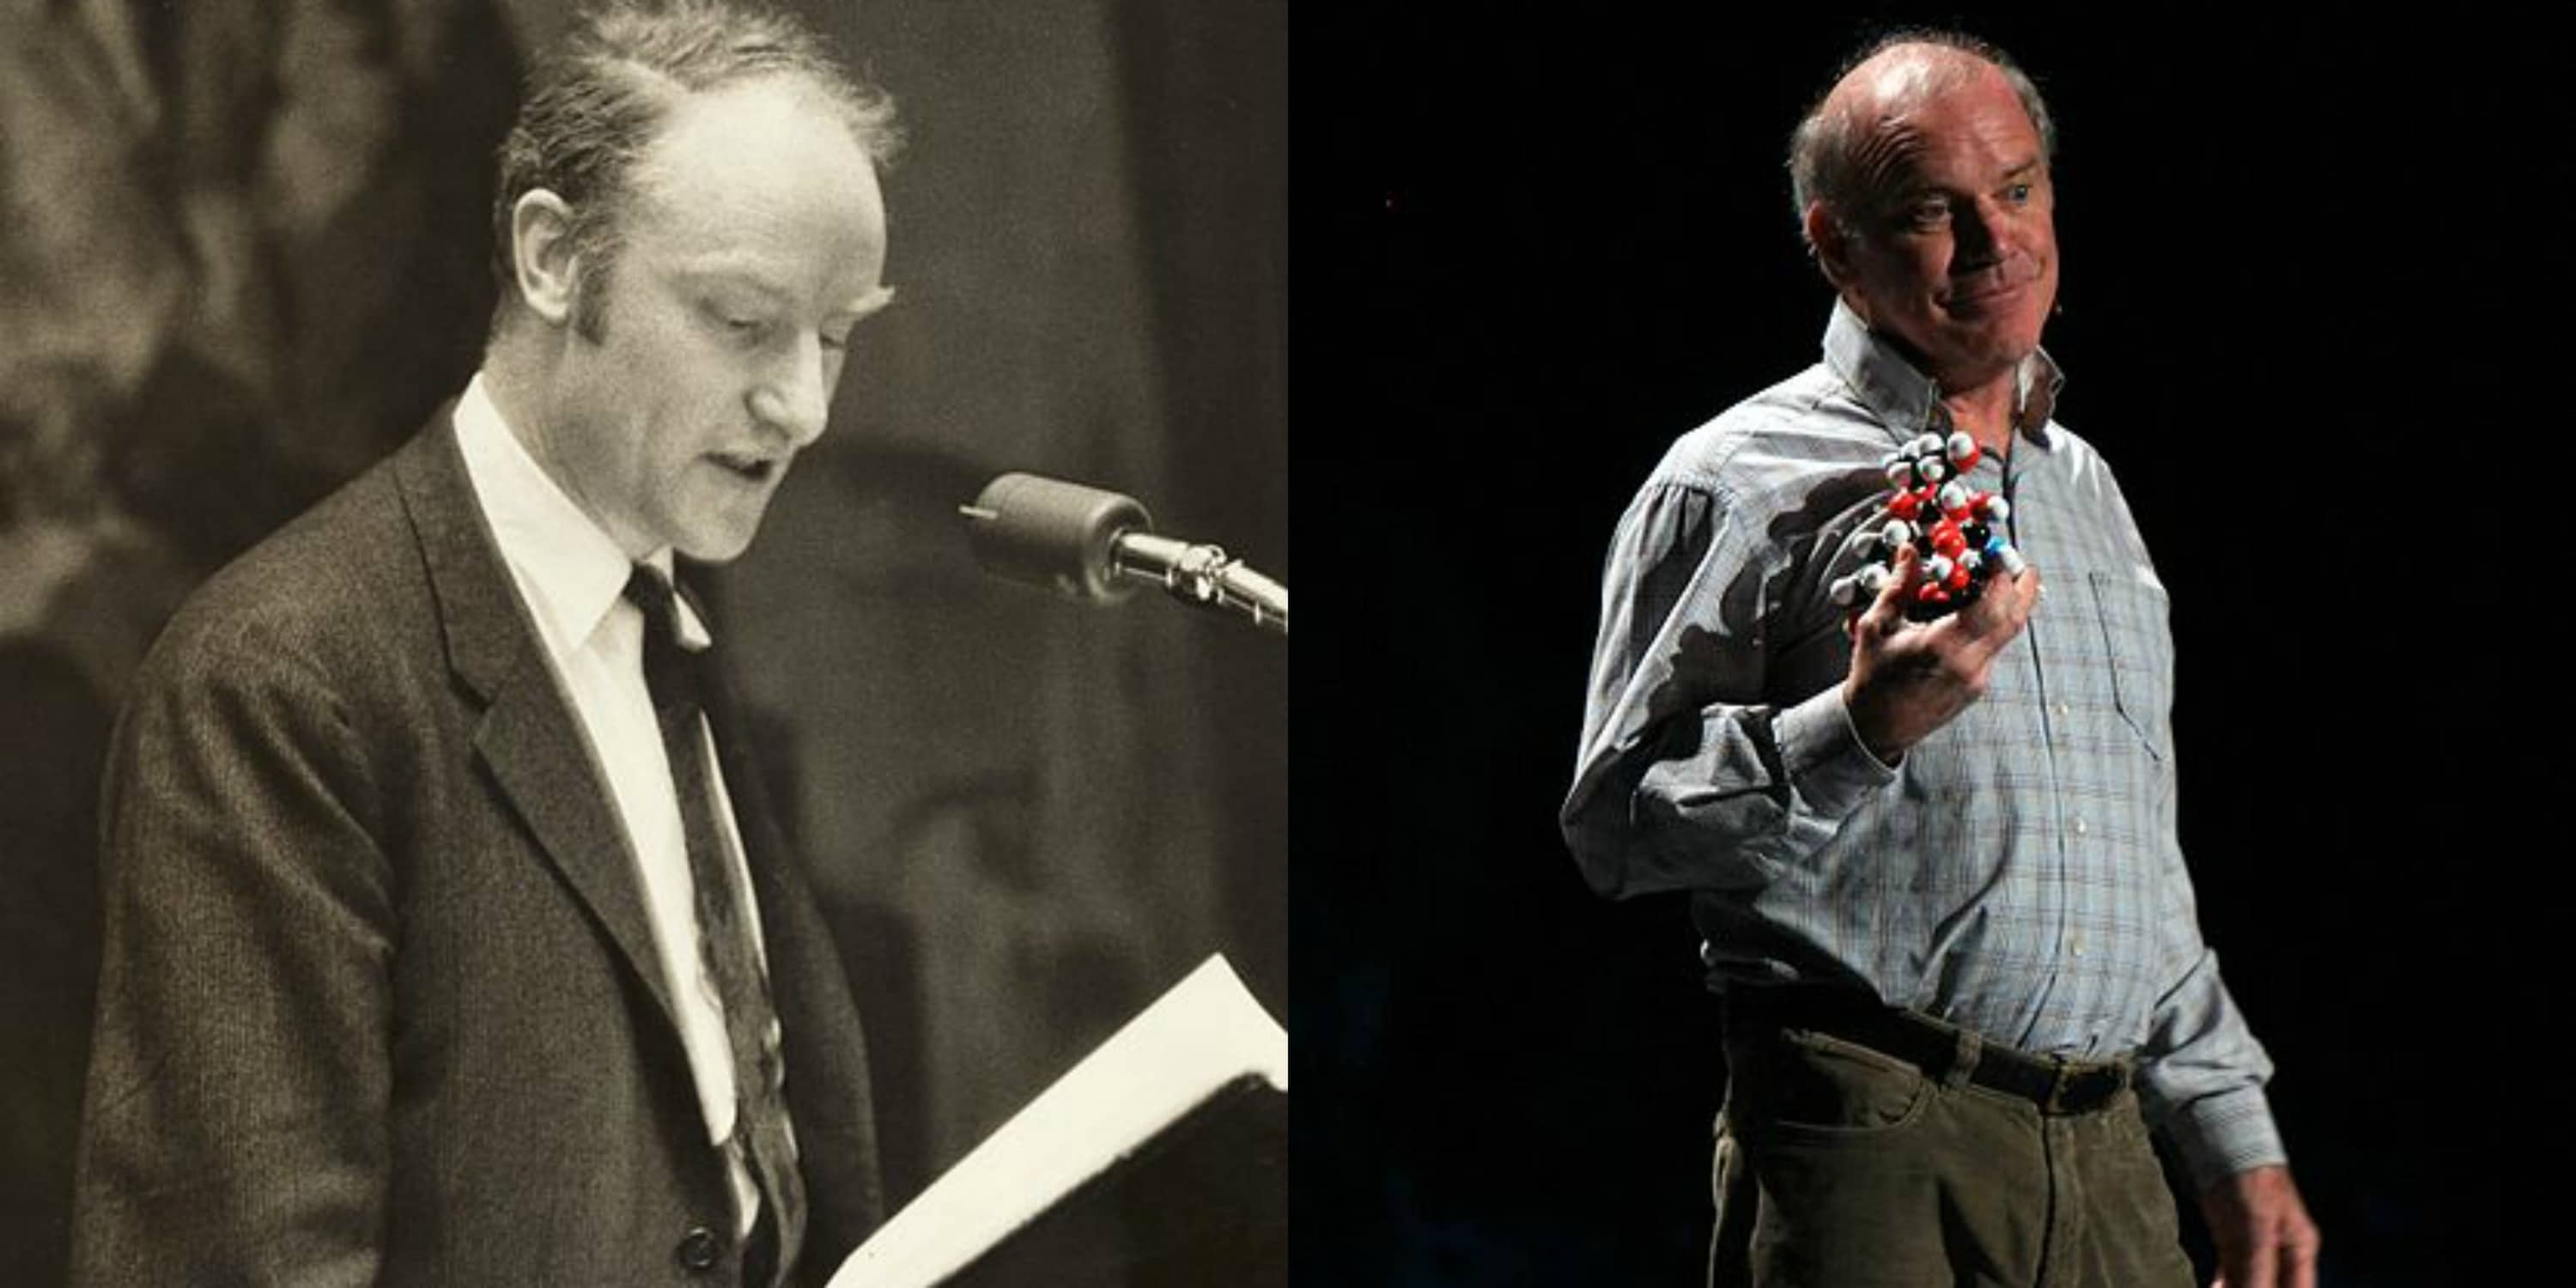 The Building Blocks of Life: Kary Mullis and Francis Crick's Psychedelic Breakthrough